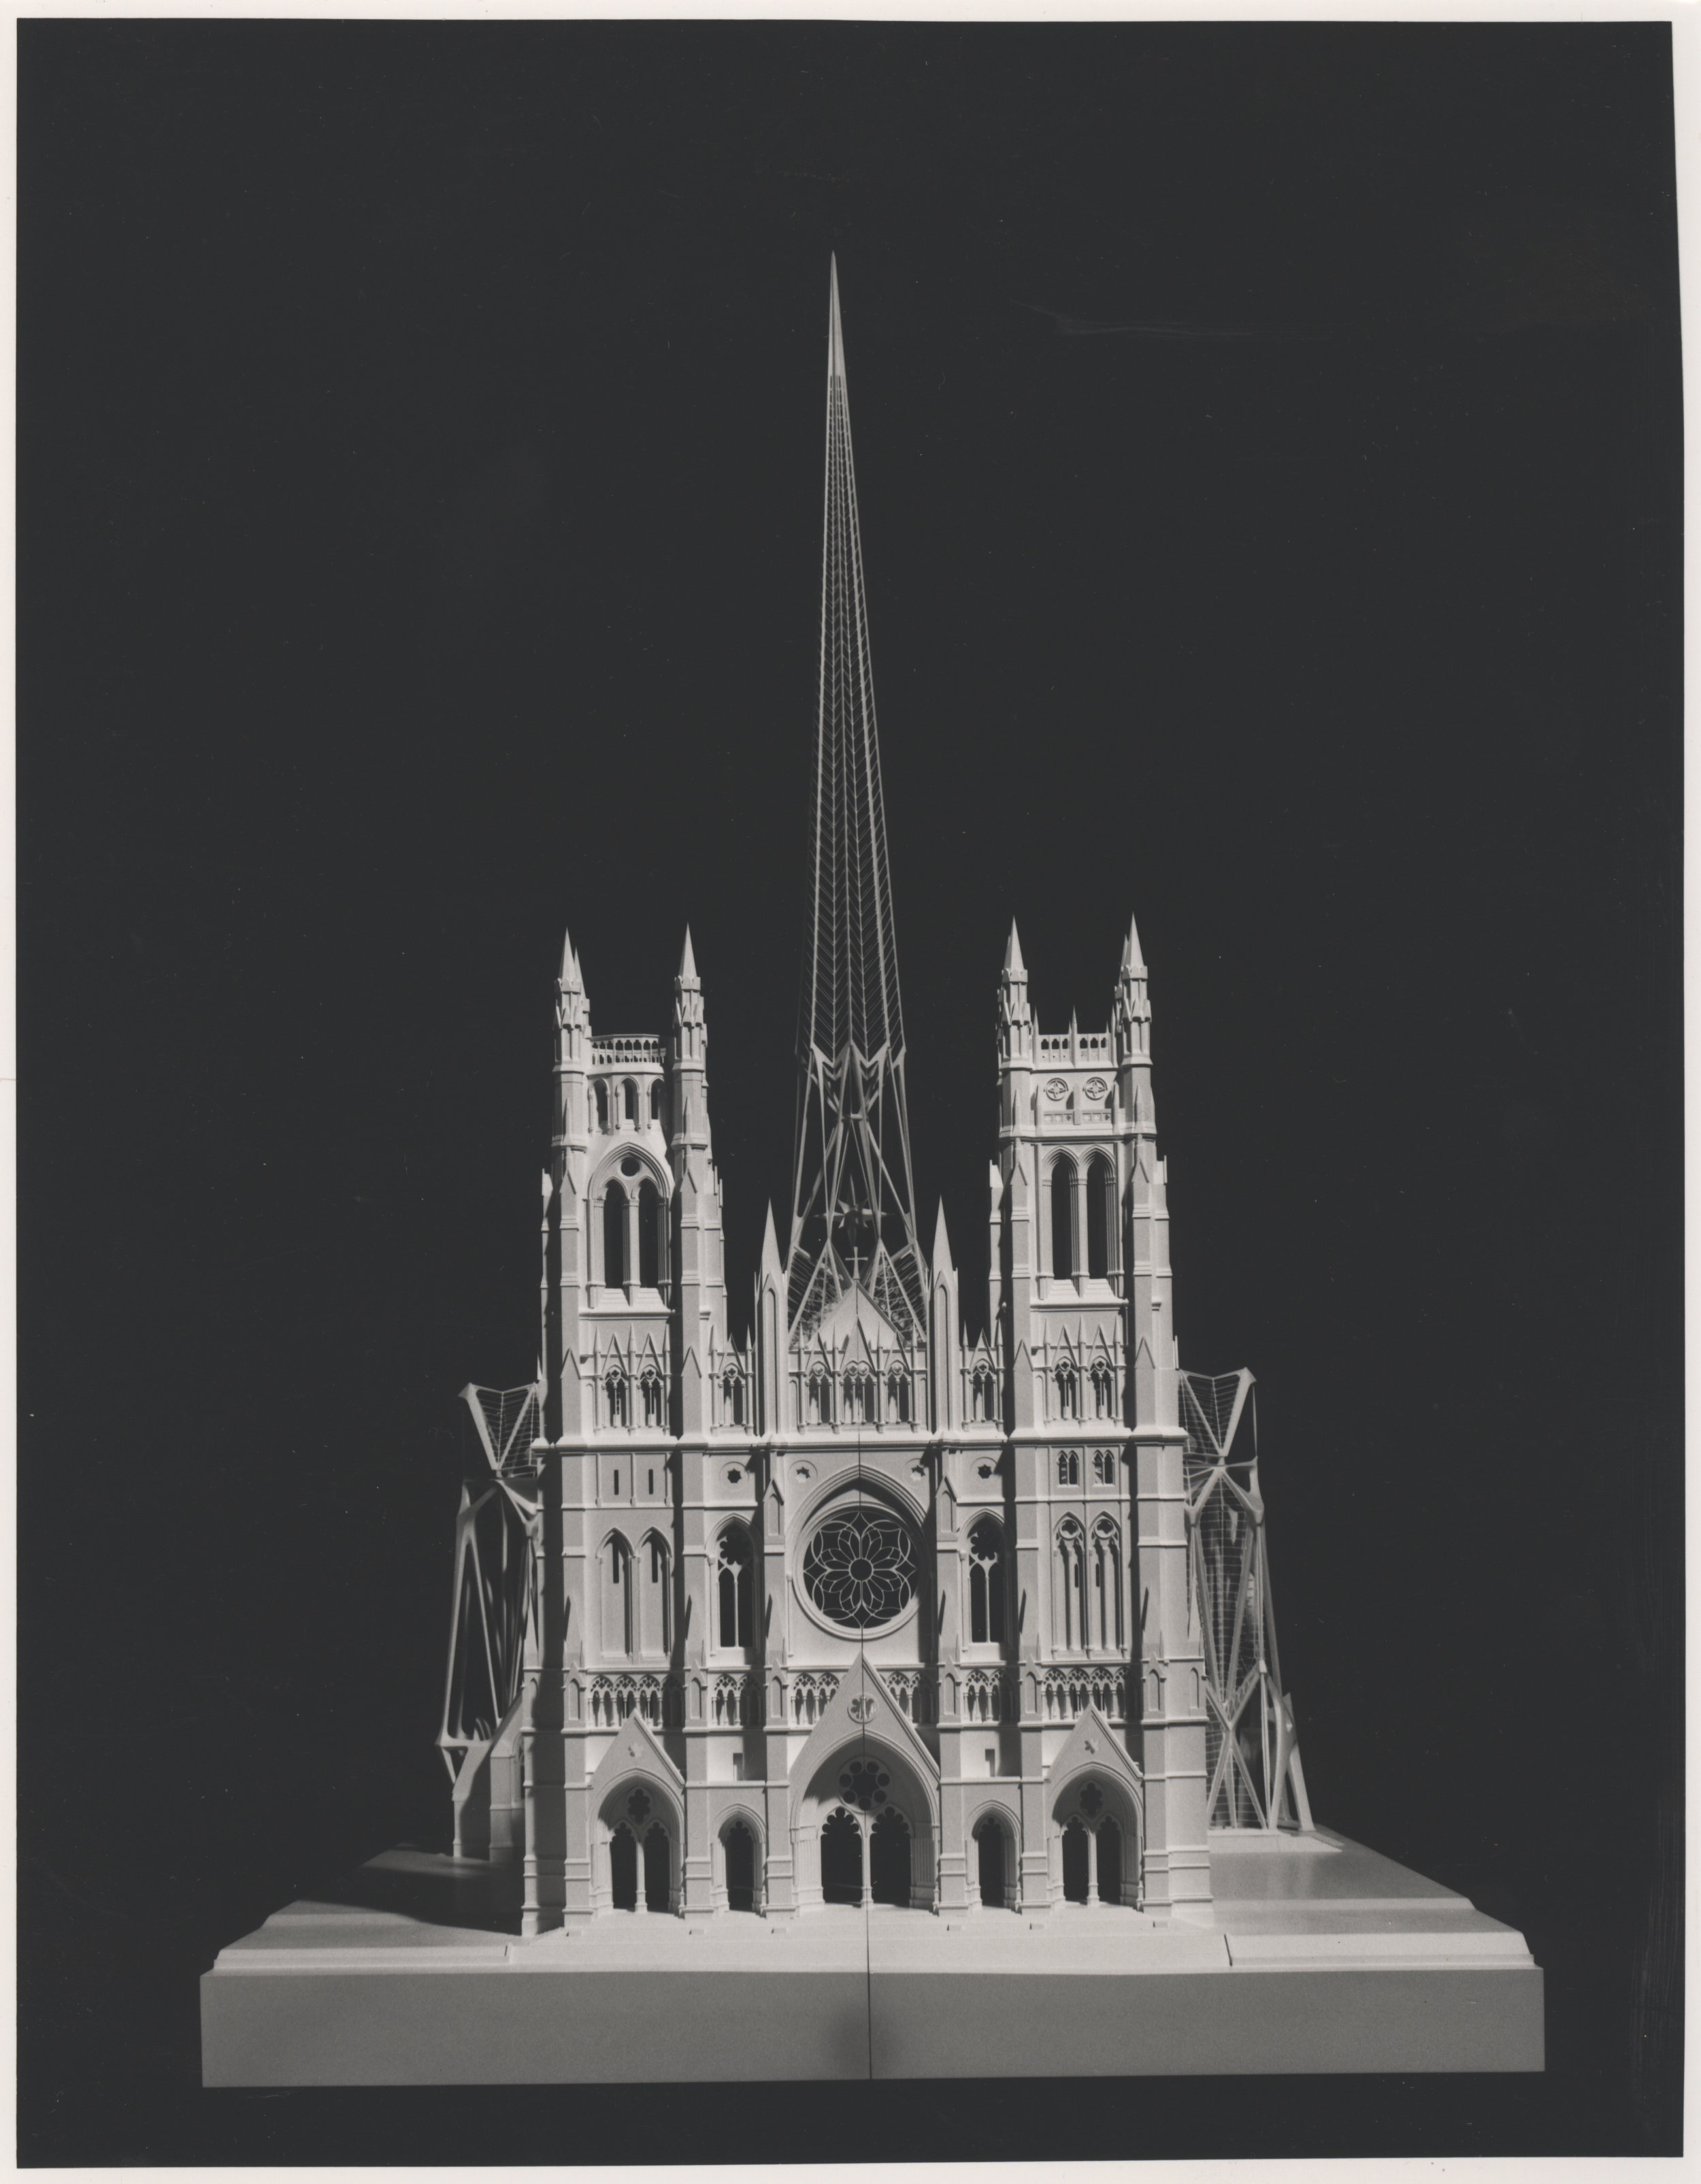 Calatrava's 1991 proposal featured a tensile spire across the parking, rib like Gaudi-esque north and south transepts and a greenhouse along the roof. Credit: Episcopal Diocese of New York Archives